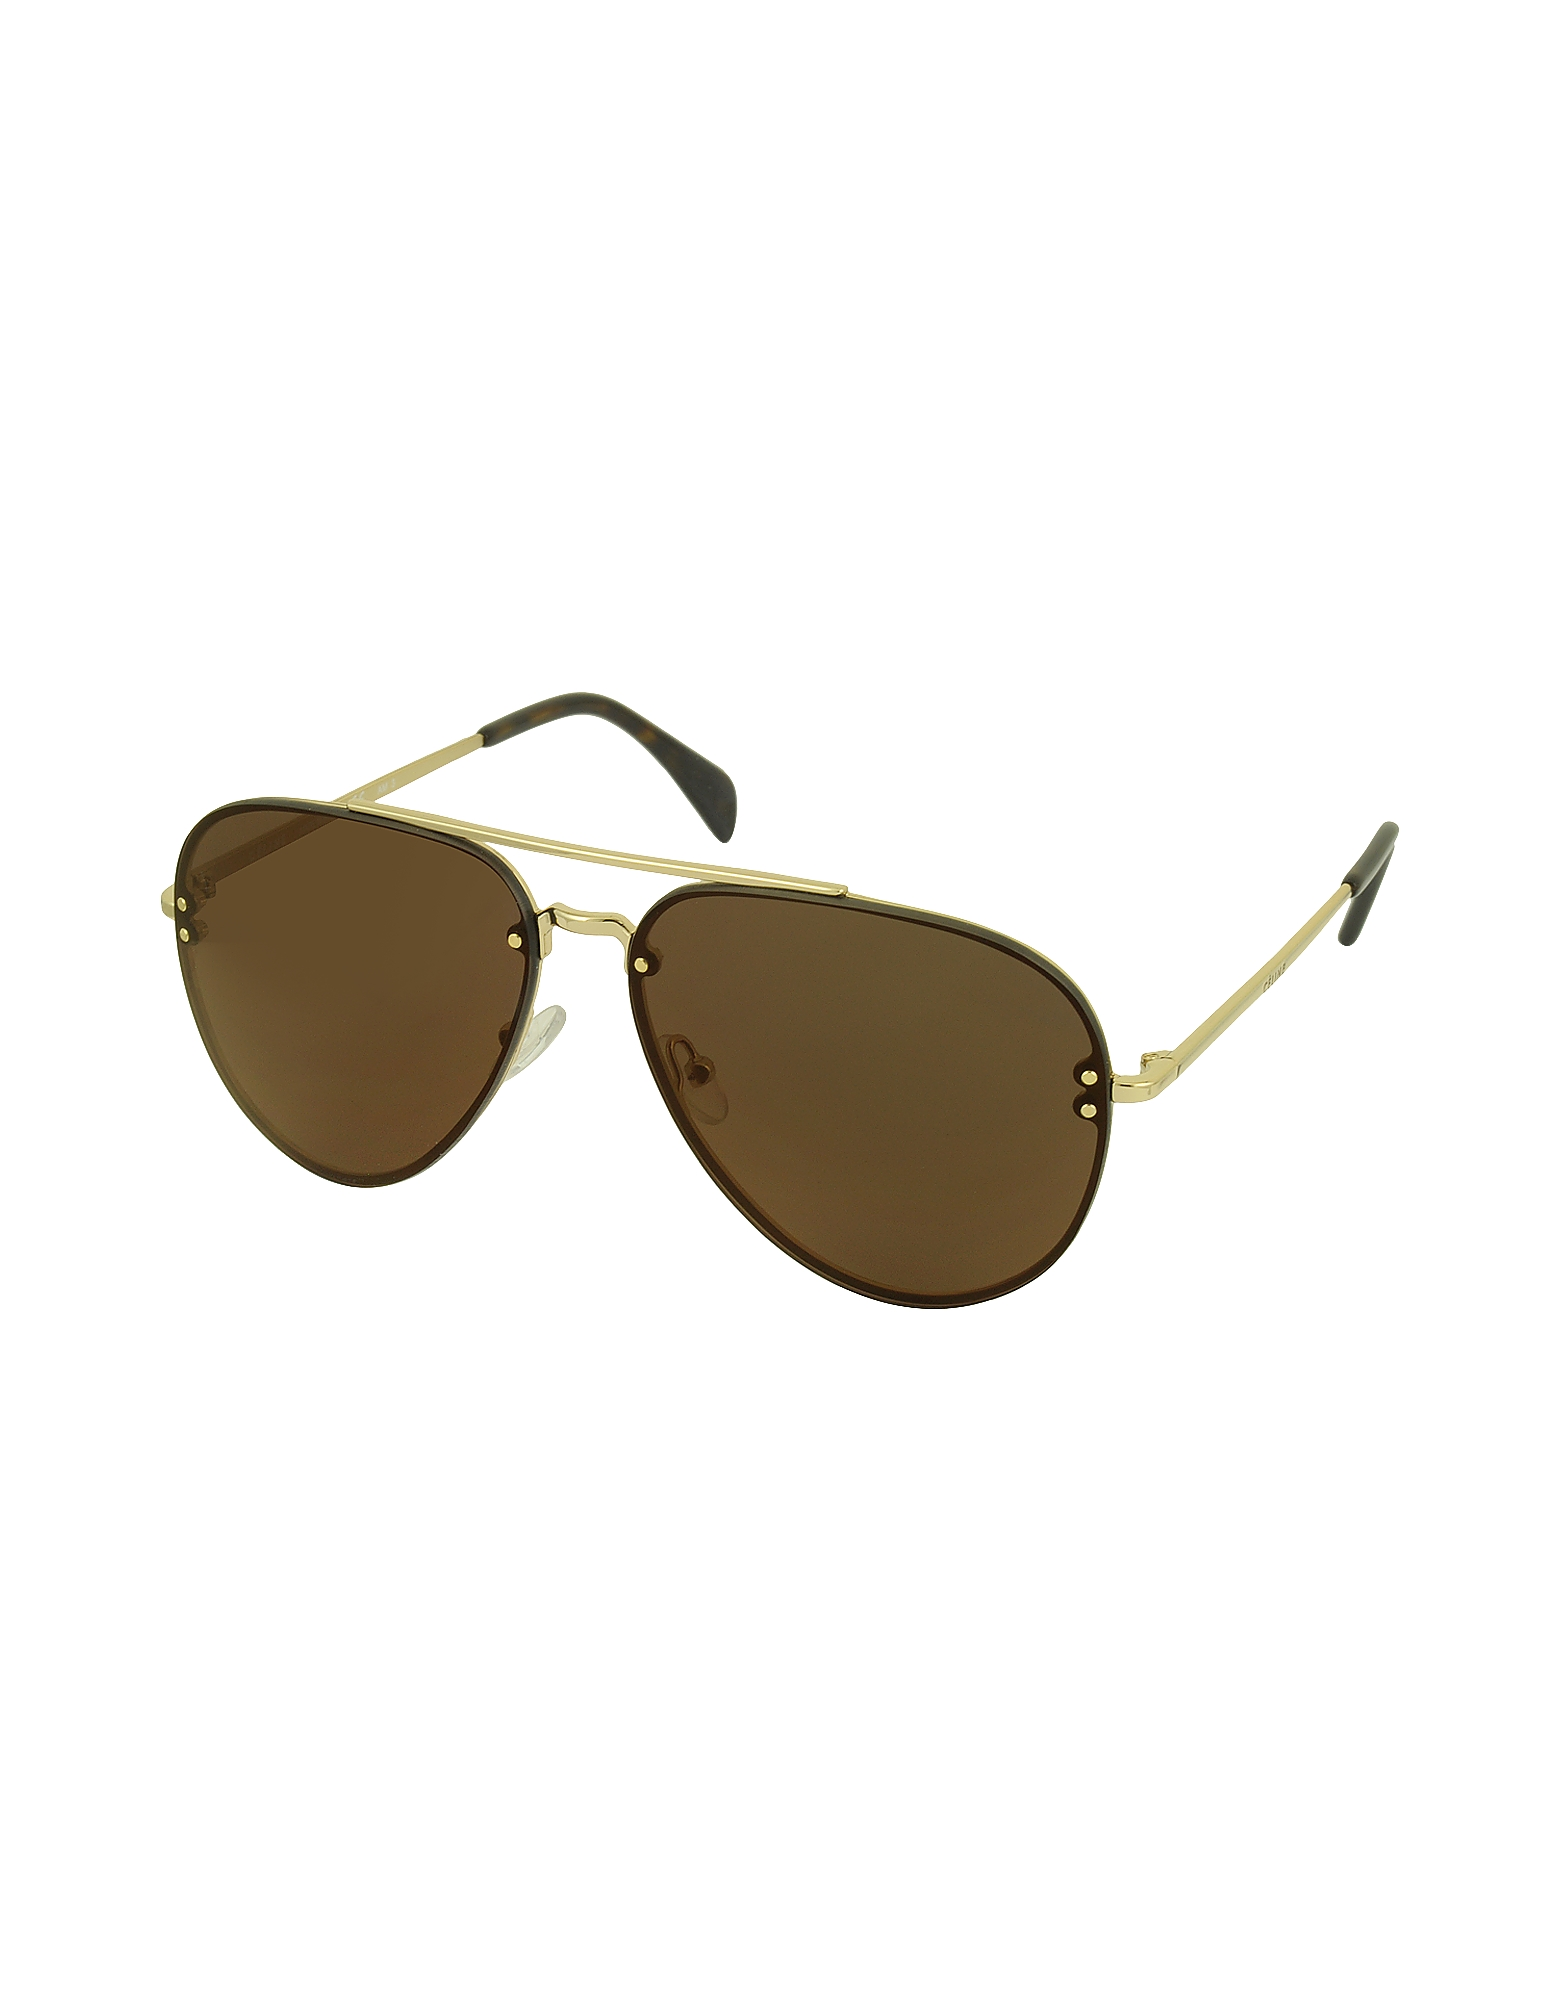 MIRROR CL 41391/S J5GLC Black Acetate & Gold Metal Aviator Unisex Sunglasses от Forzieri.com INT